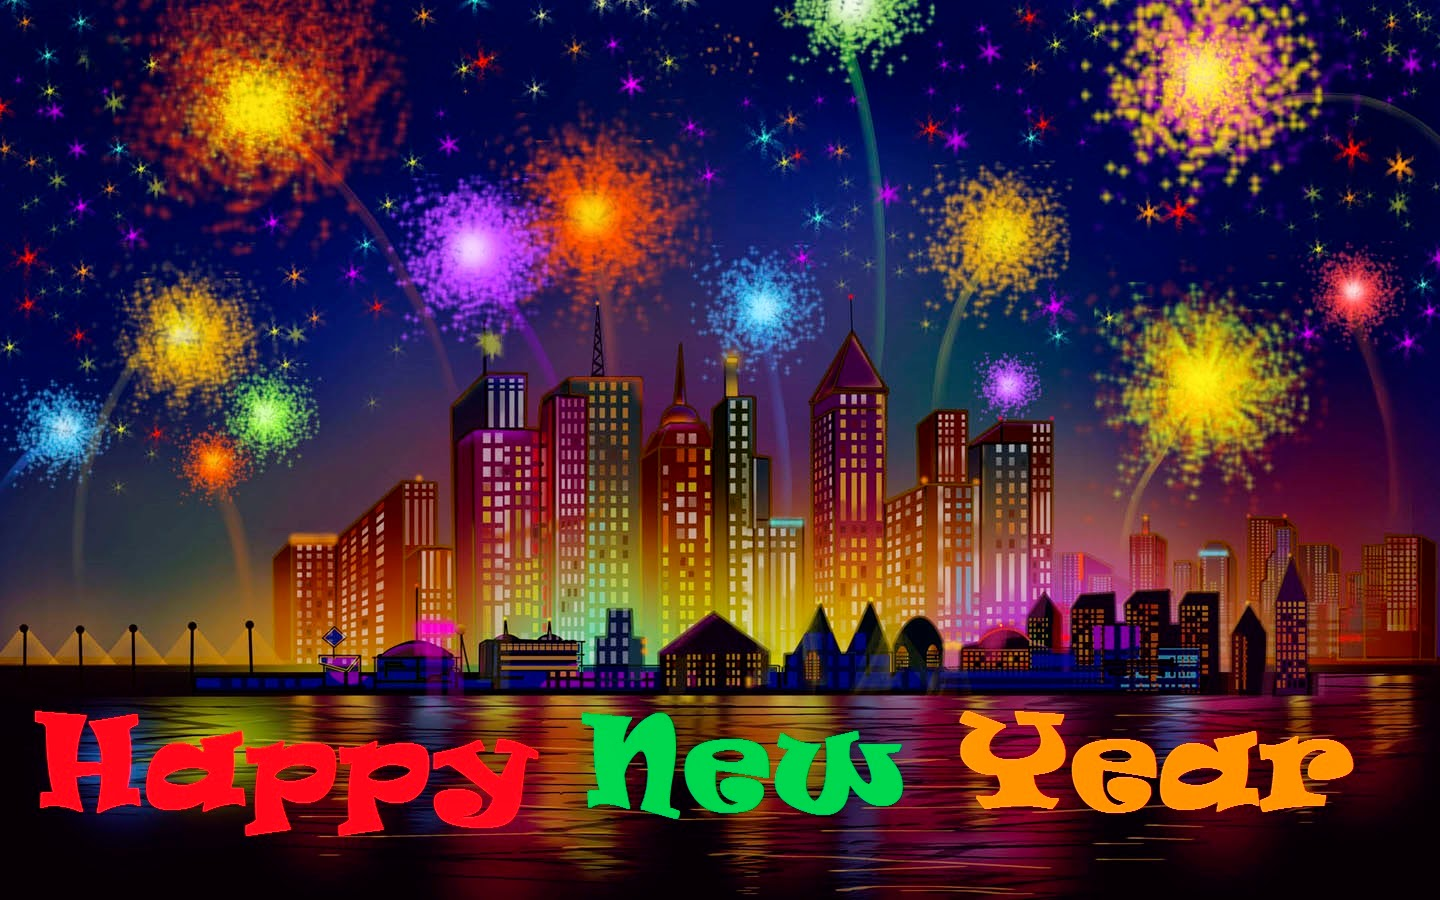 Happy New Year 2015 Desktop Background Wallpapers loobobilly 1440x900